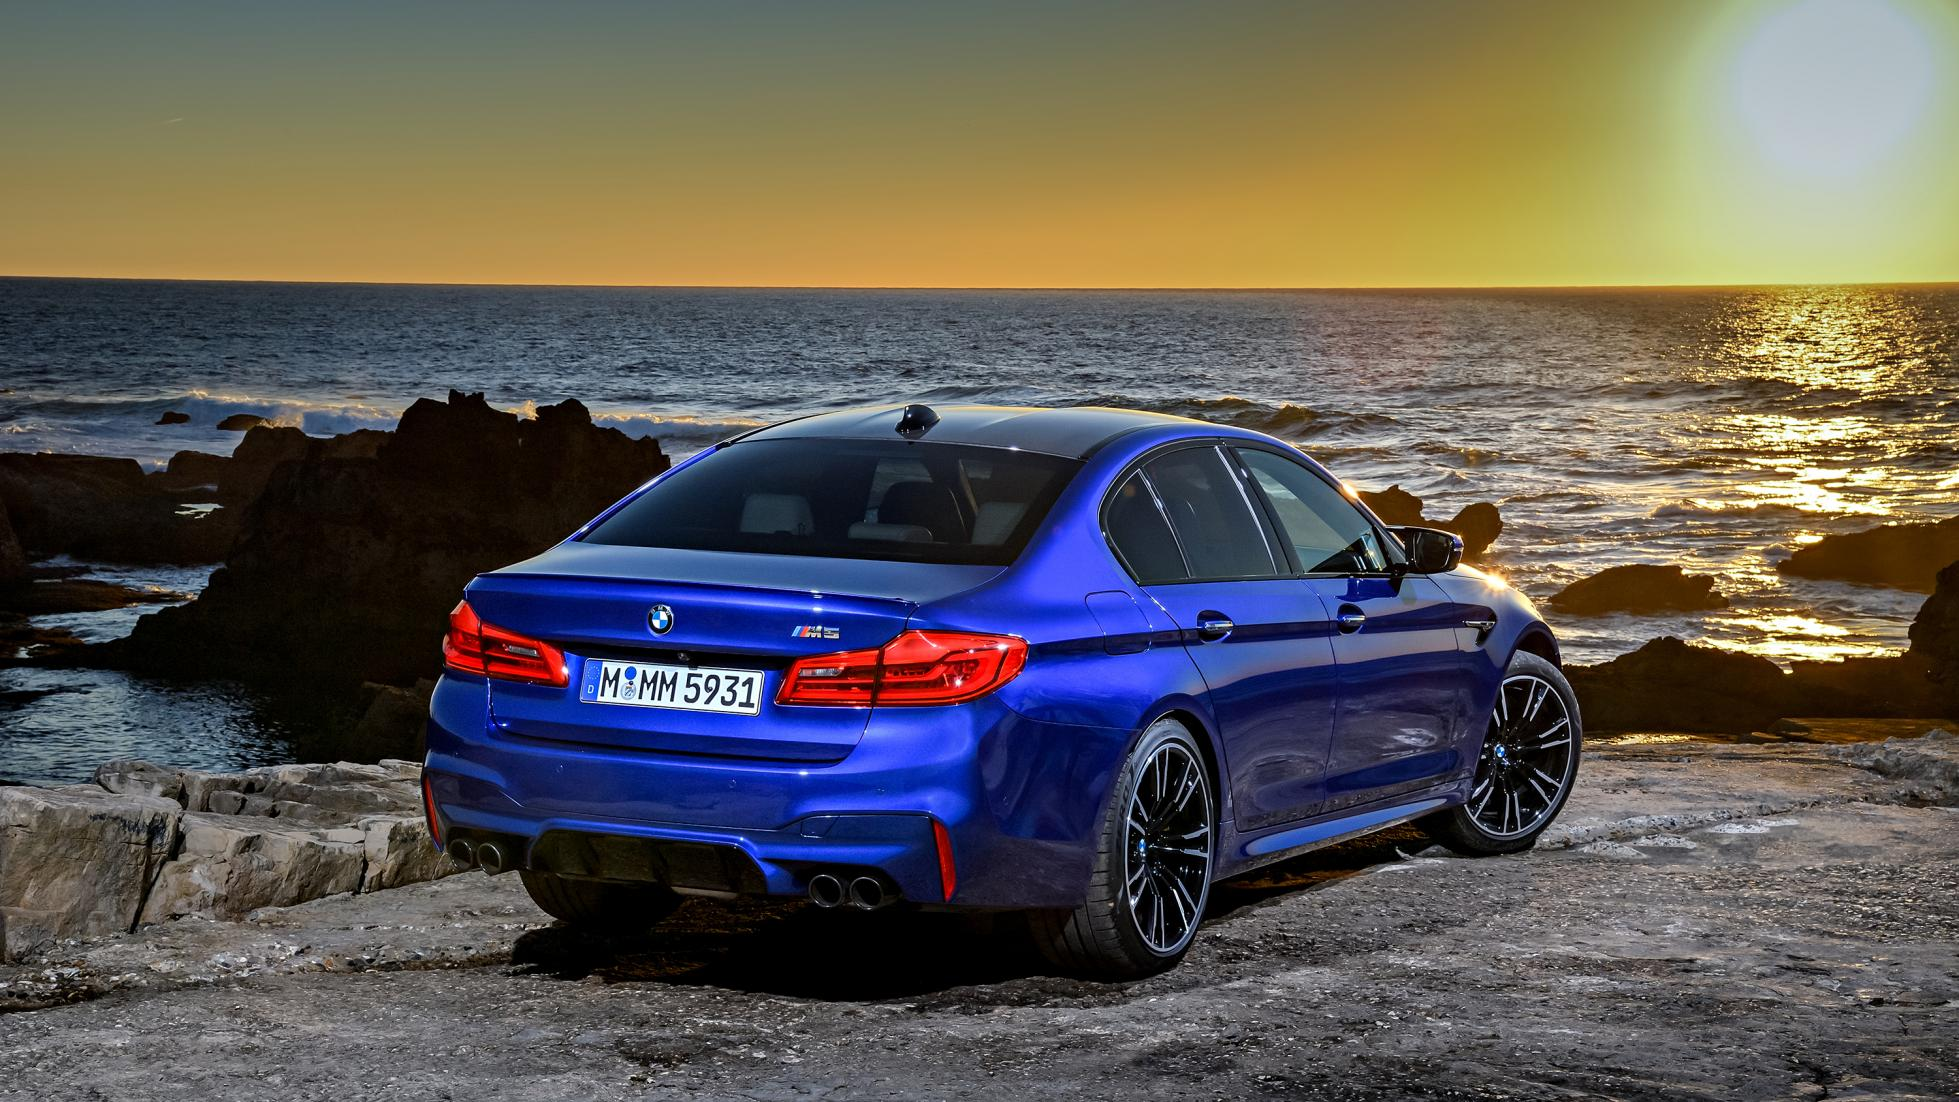 p90286926_highres_the-new-bmw-m5-11-20